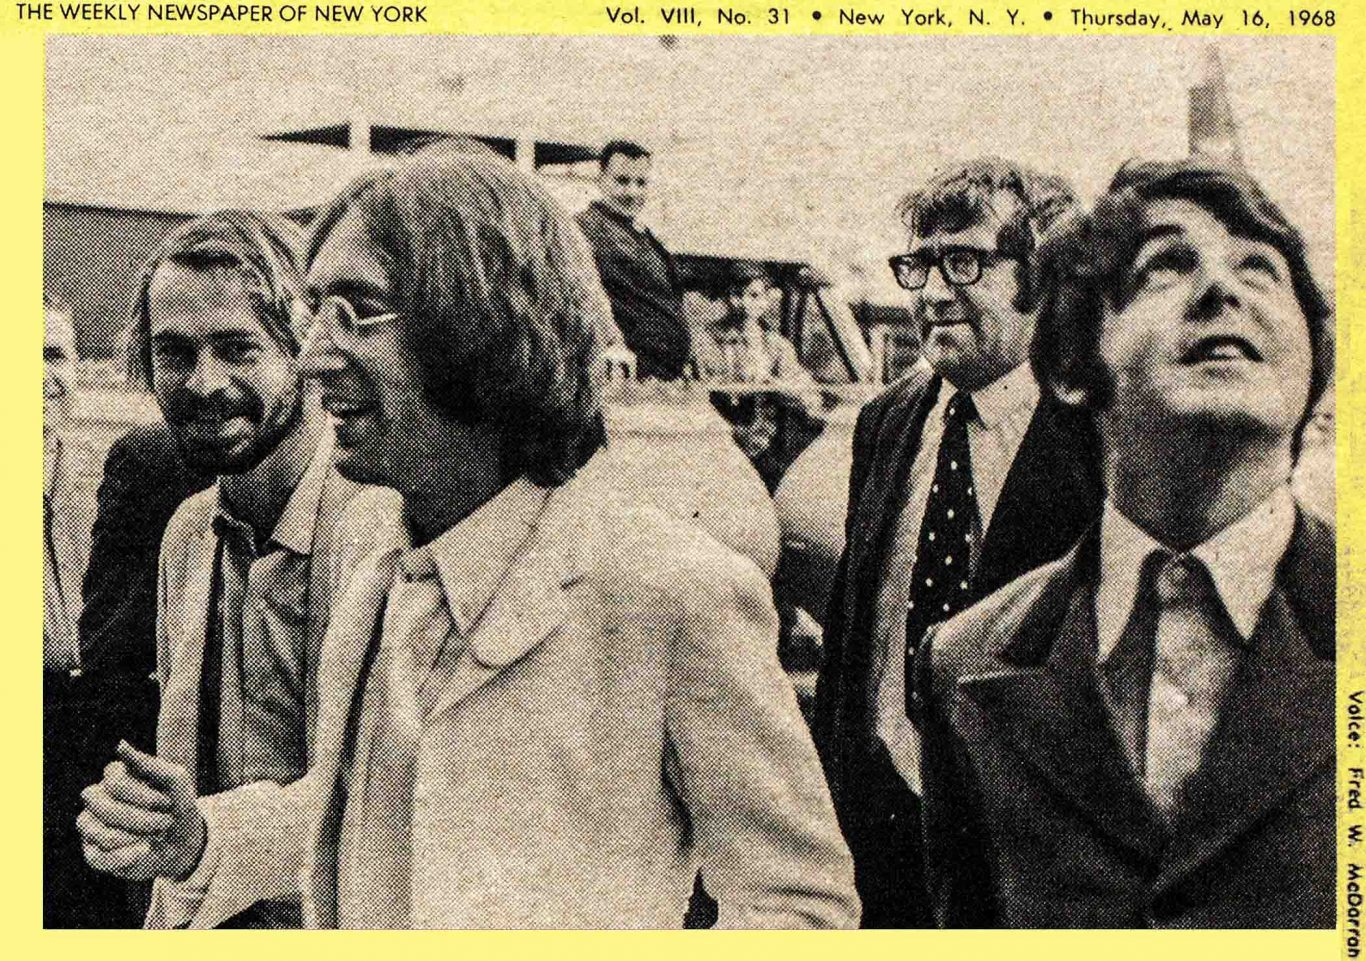 1968 Village Voice article by Howard Smith about John Lennon and Paul McCarney in New York City